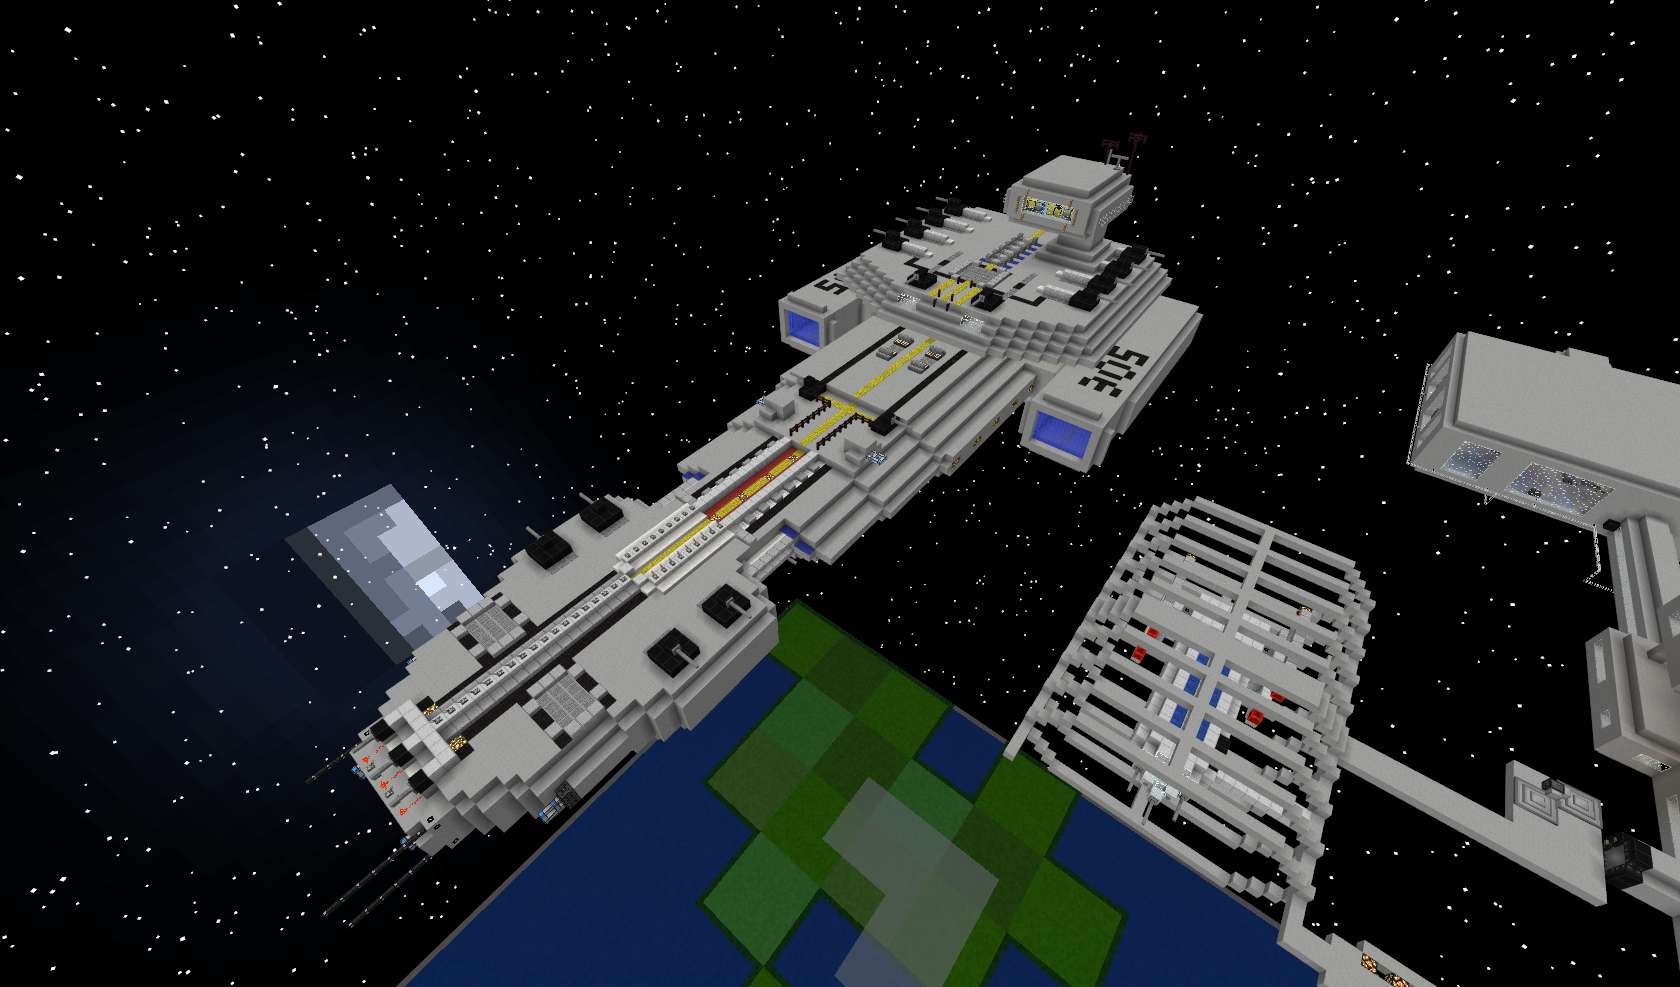 minecraft space ship image